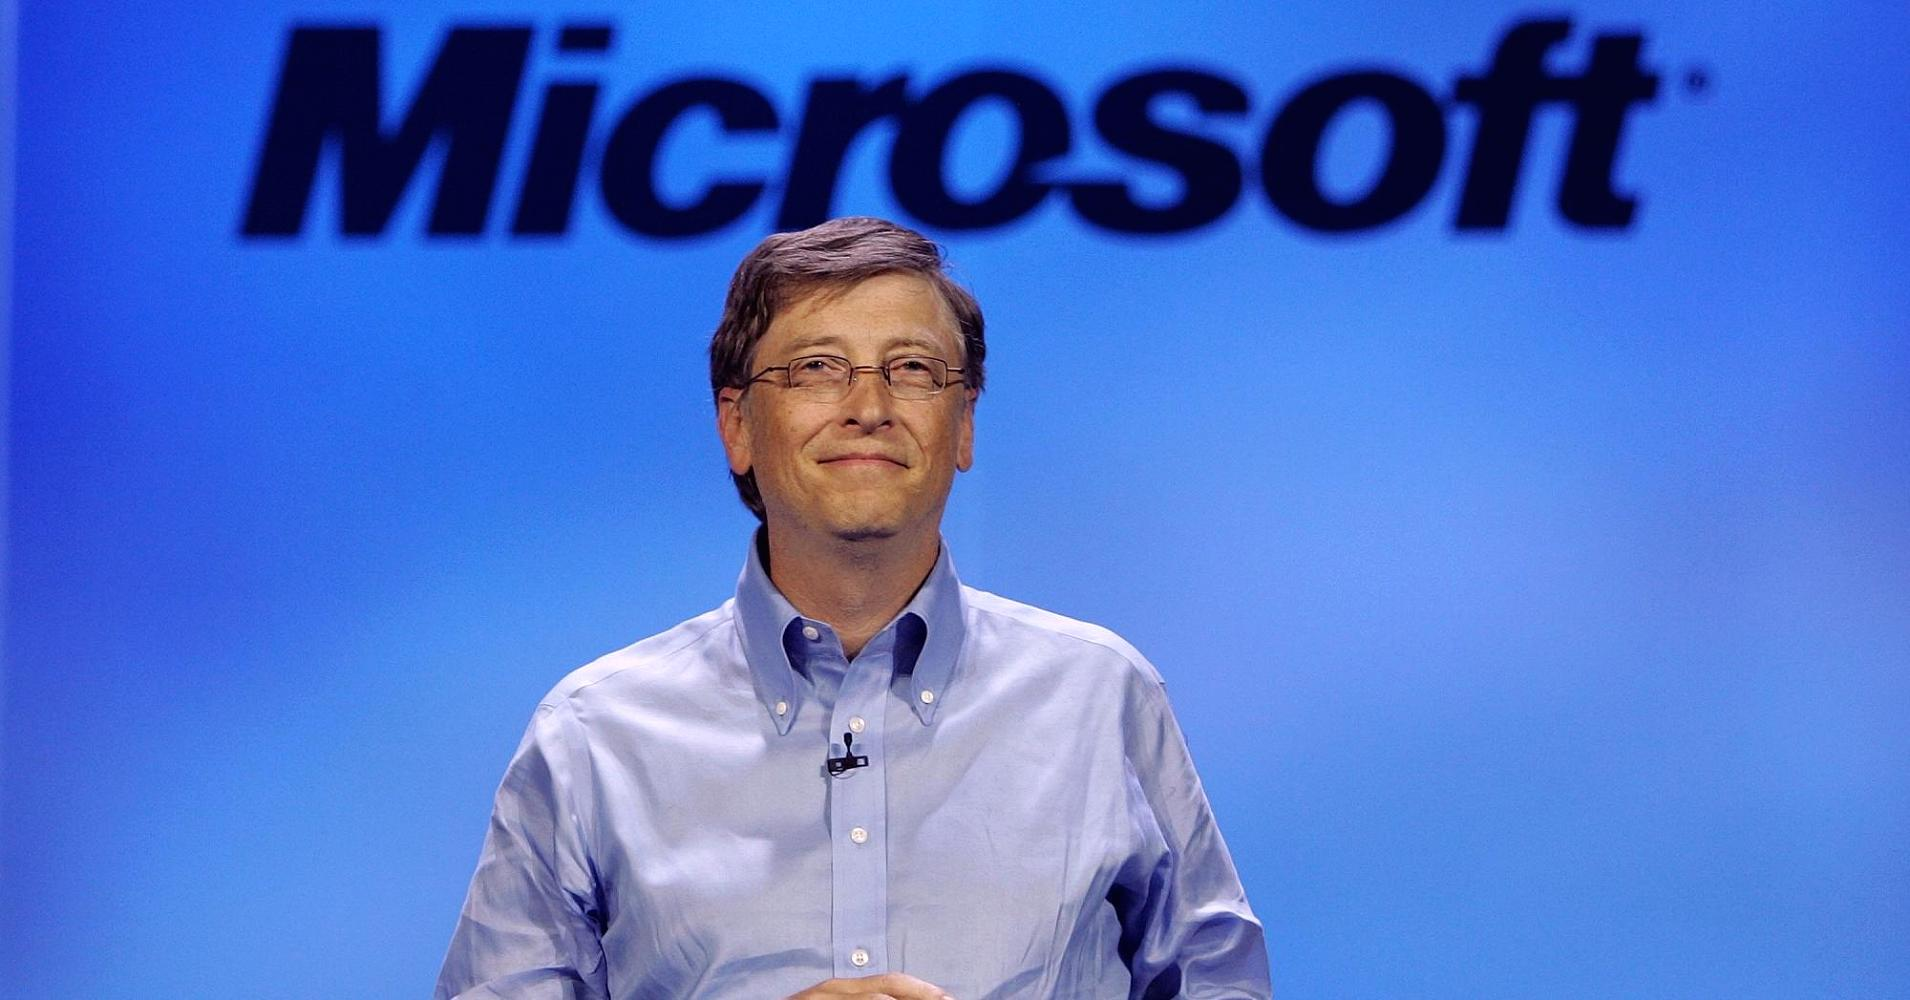 Latest News about Bill Gates